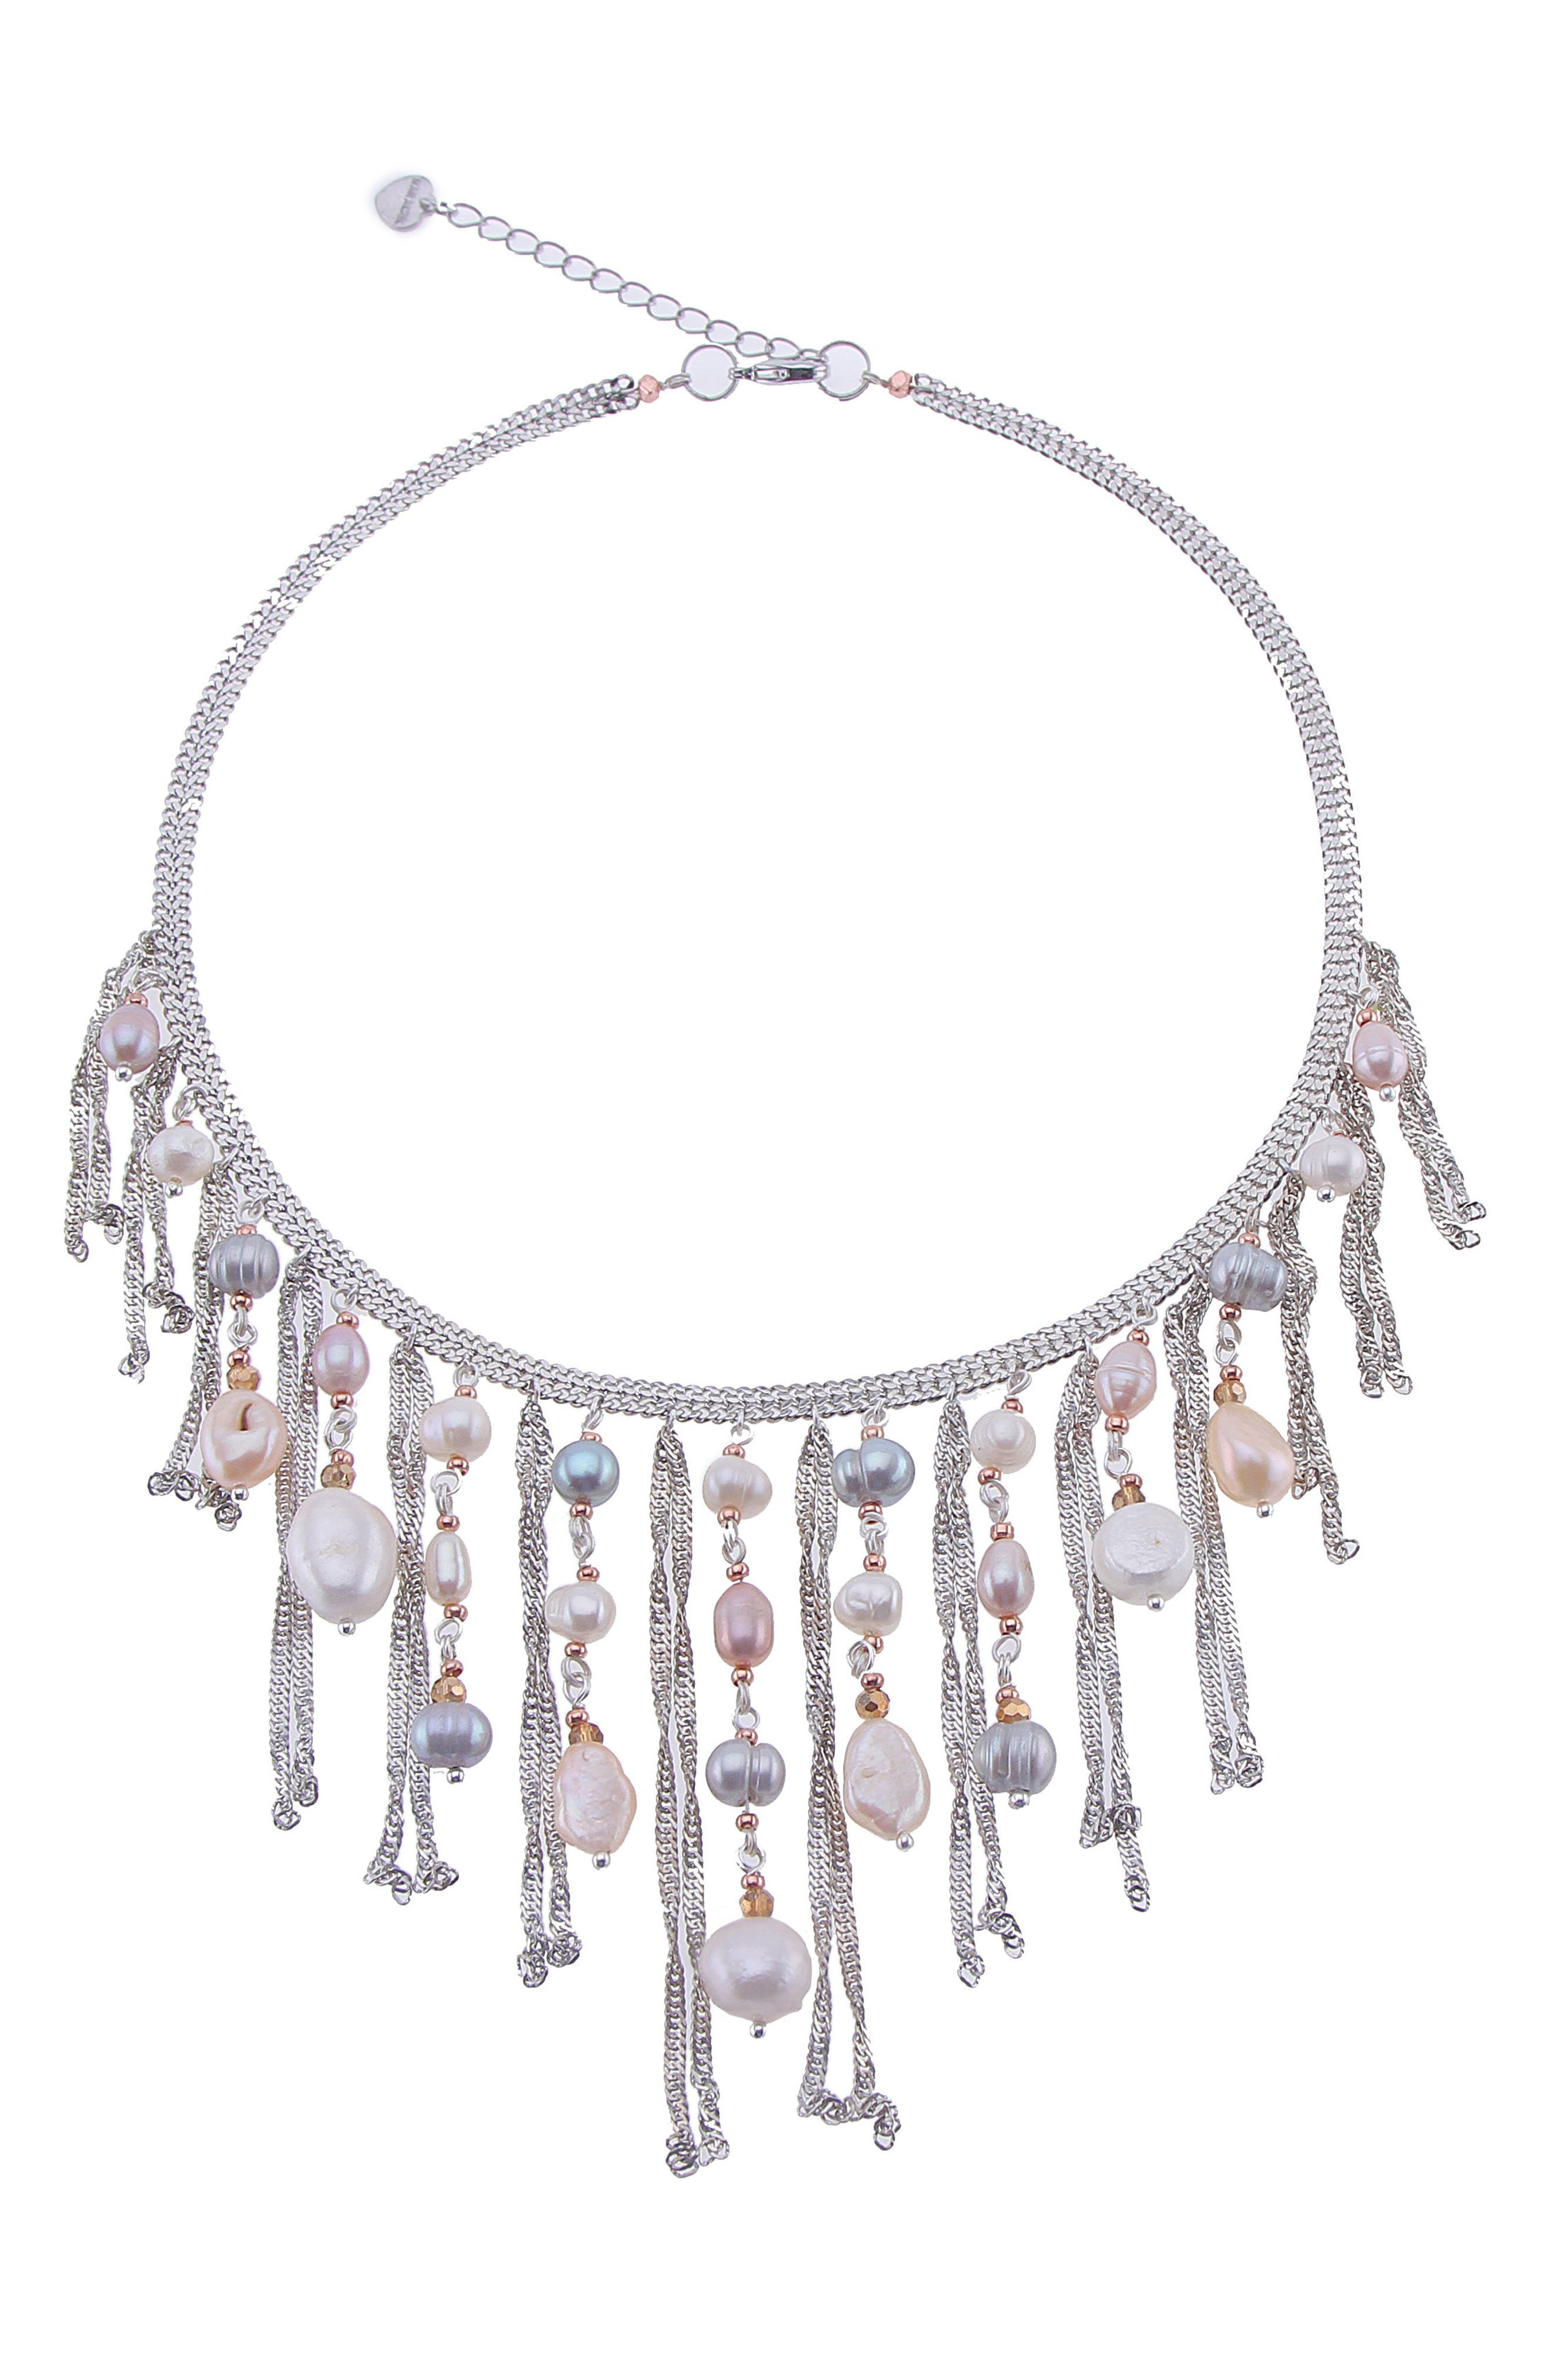 Freshwater Pearl & Chain Fringe Bib Necklace,                             Main thumbnail 1, color,                             White